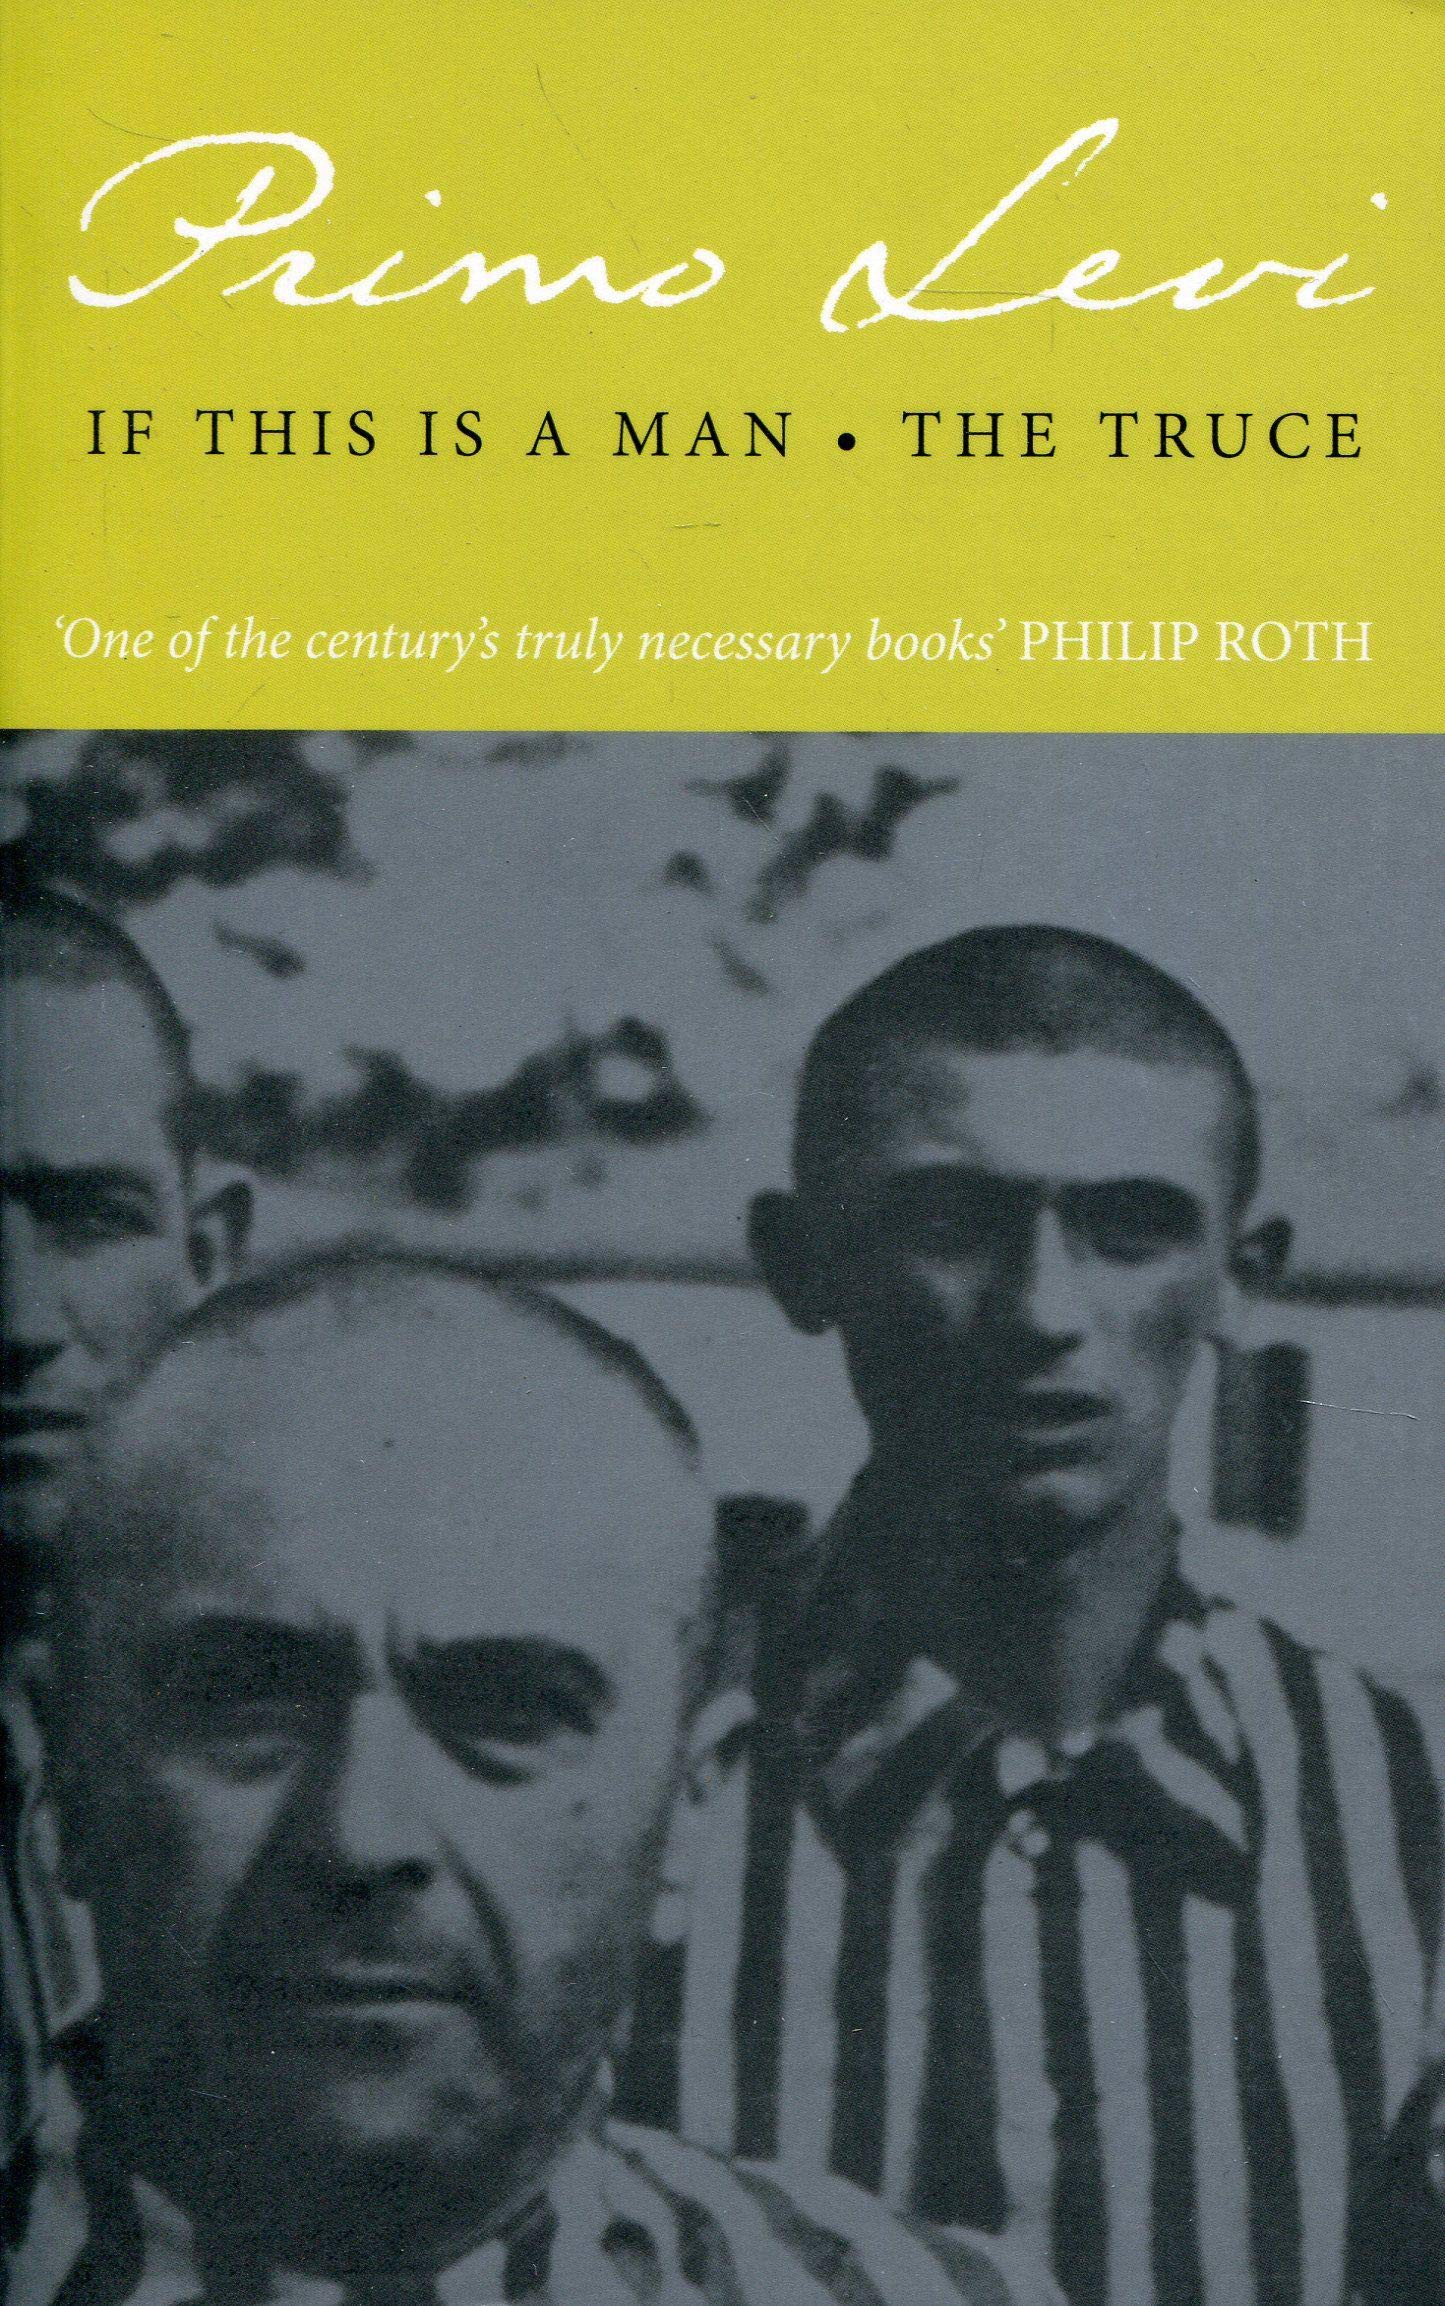 If This Is A Man By Primo Levi A Review By Yannick Ondoa Medium